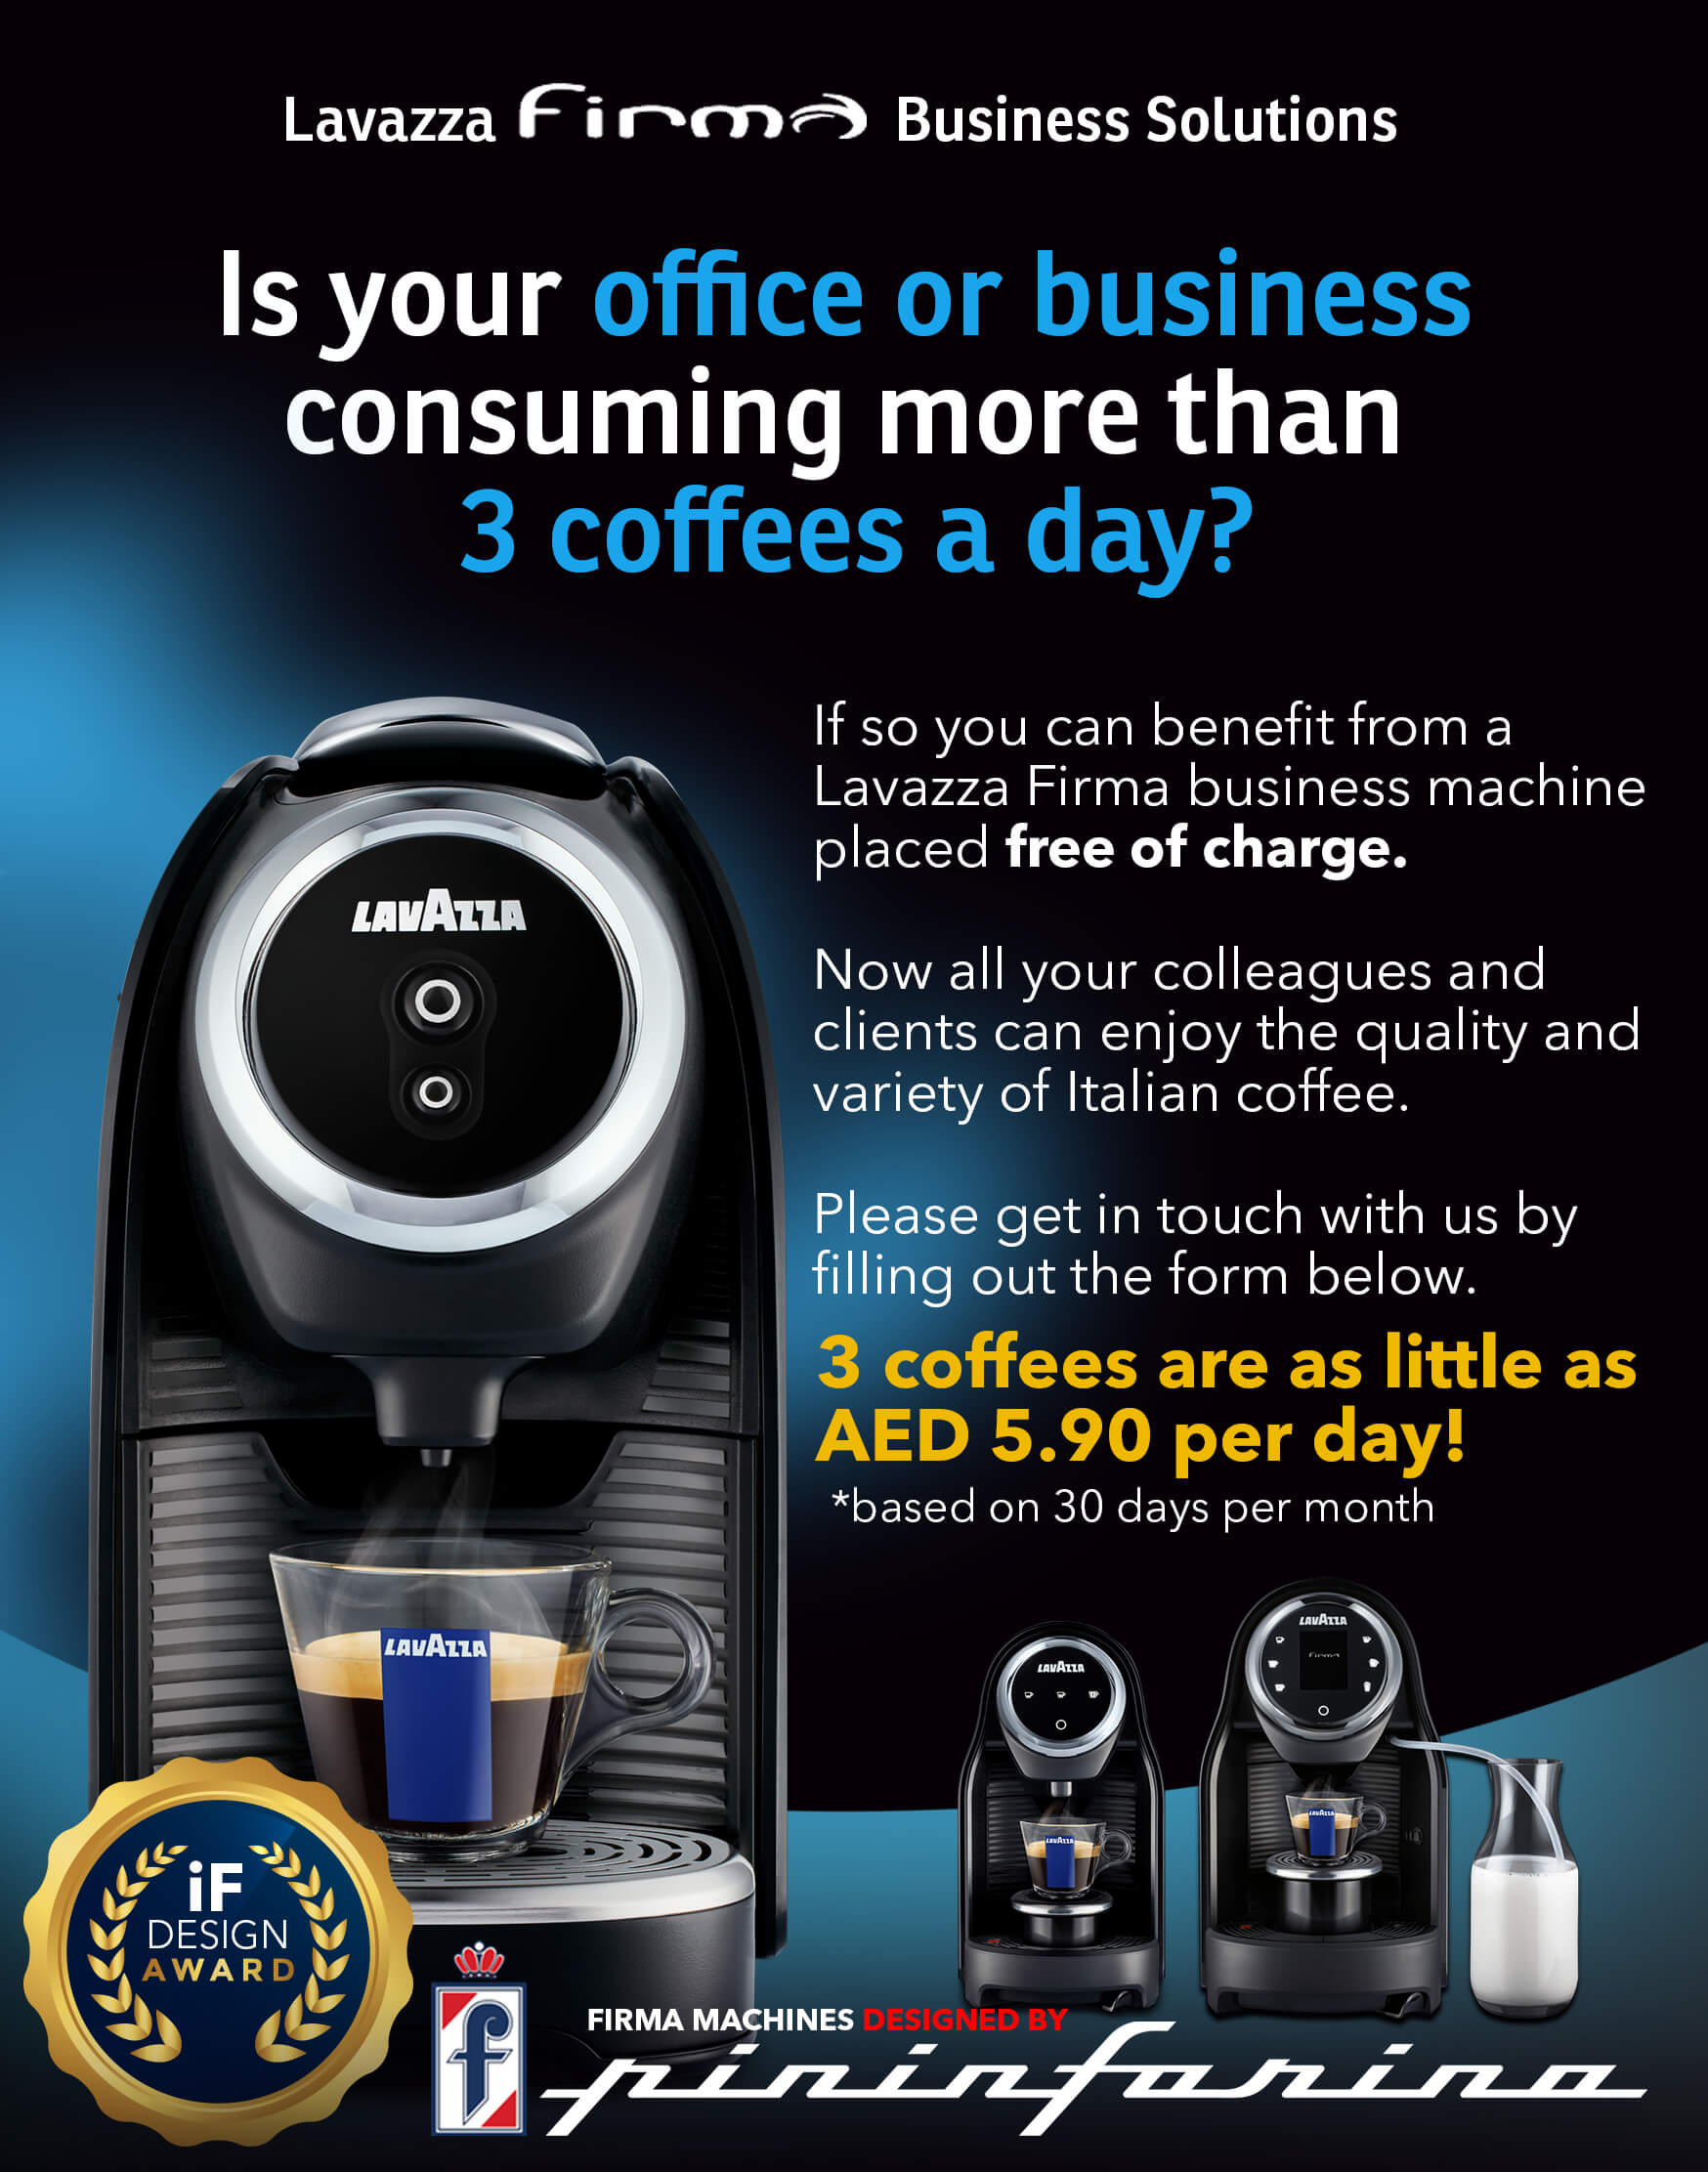 Lavazza Firma Free Office Coffee Machine